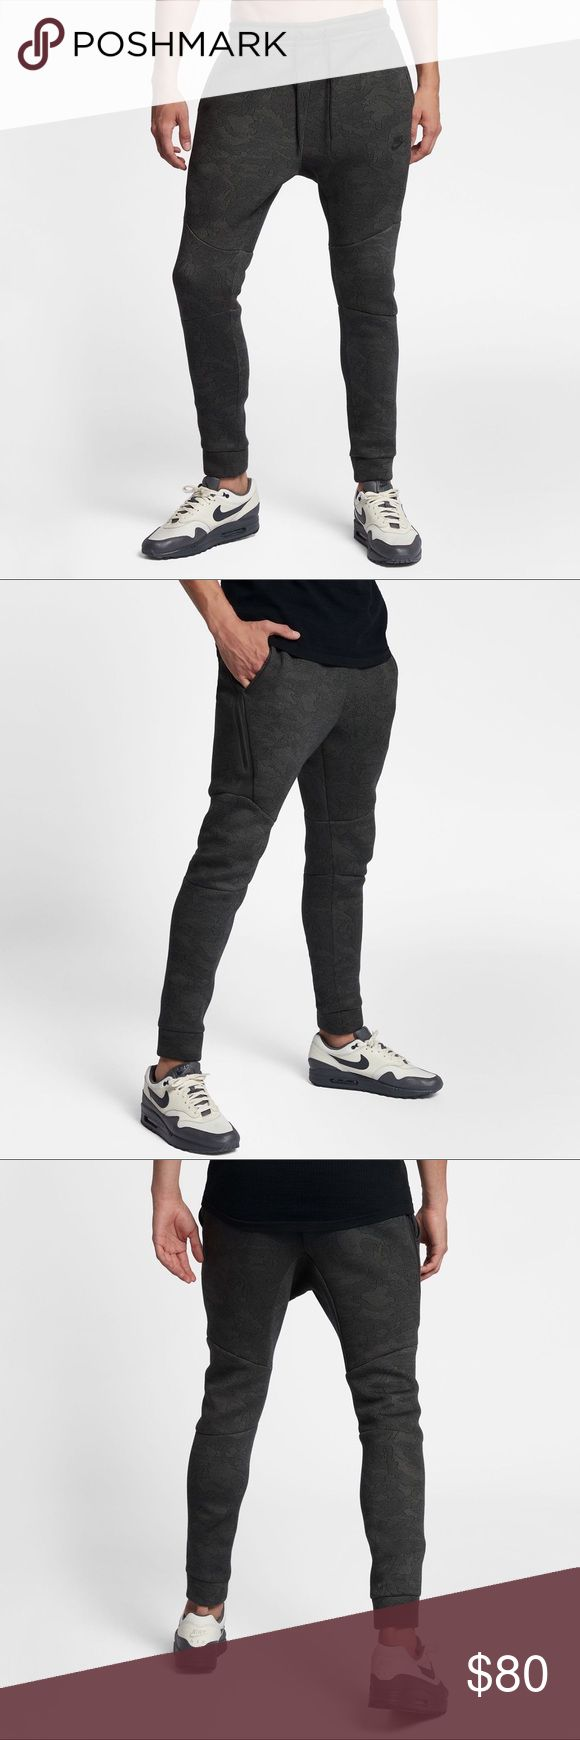 MENS NIKE TECH FLEECE JOGGERS | NEW | 863515 038 ☑️ Item is brand with tags.        ✔️ Retail: $120 | These are very popular Nike Joggers ☑️ Will ship out within 24 hours.  ❌ No transactions outside of Posh  🔘 All my inventory in posh comes from my eBay store page, (cross listed) so prices are competitive with that platform as well.  🔘 Stores.ebay.com/premiumlacesthreads Nike Pants Sweatpants & Joggers